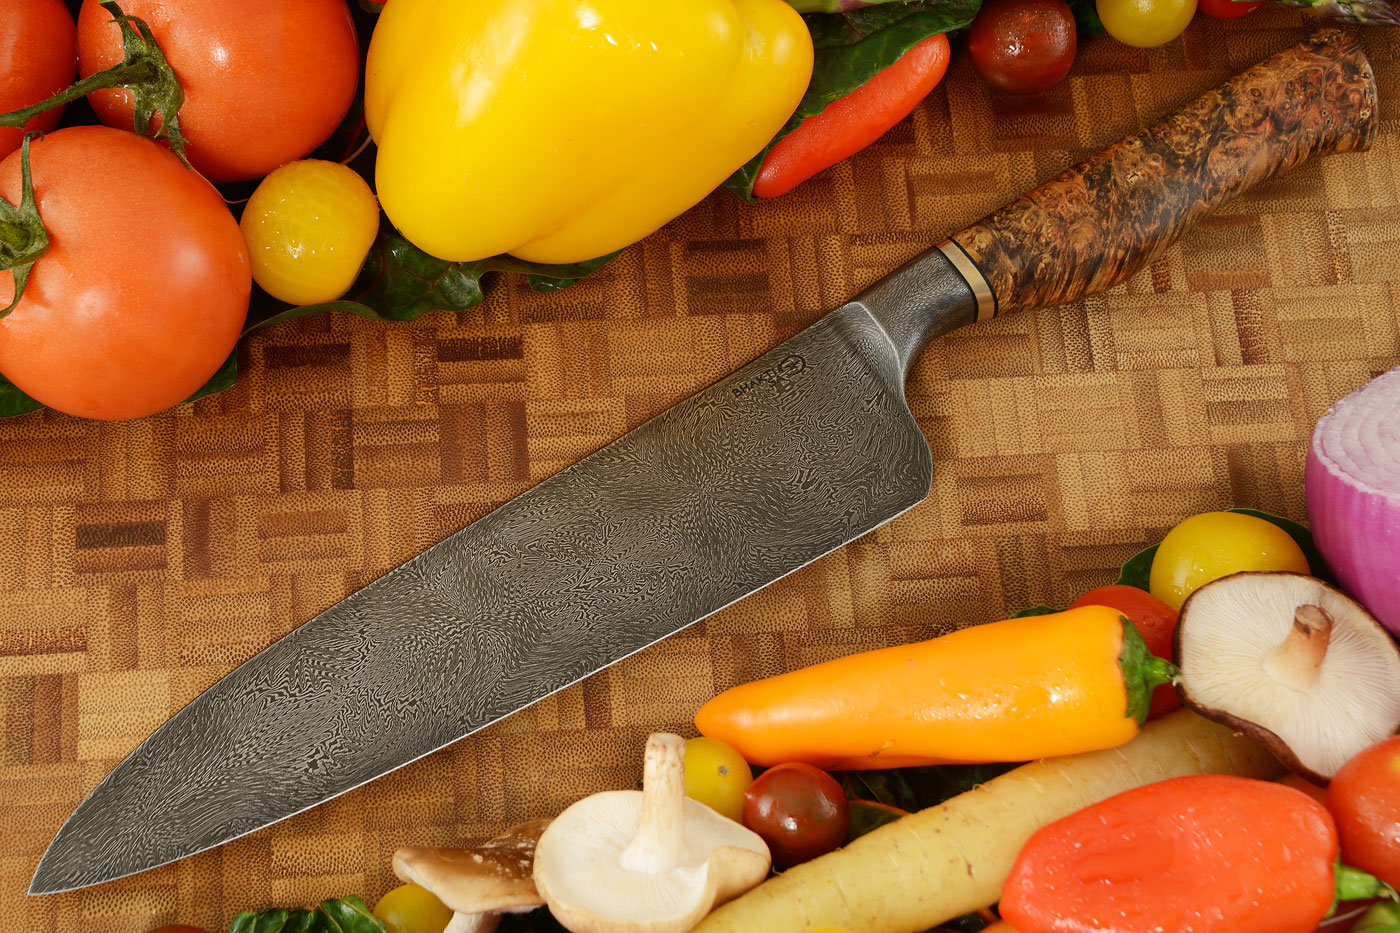 Integral Mosaic Damascus Chef's Knife (8 in) with Box Elder Burl